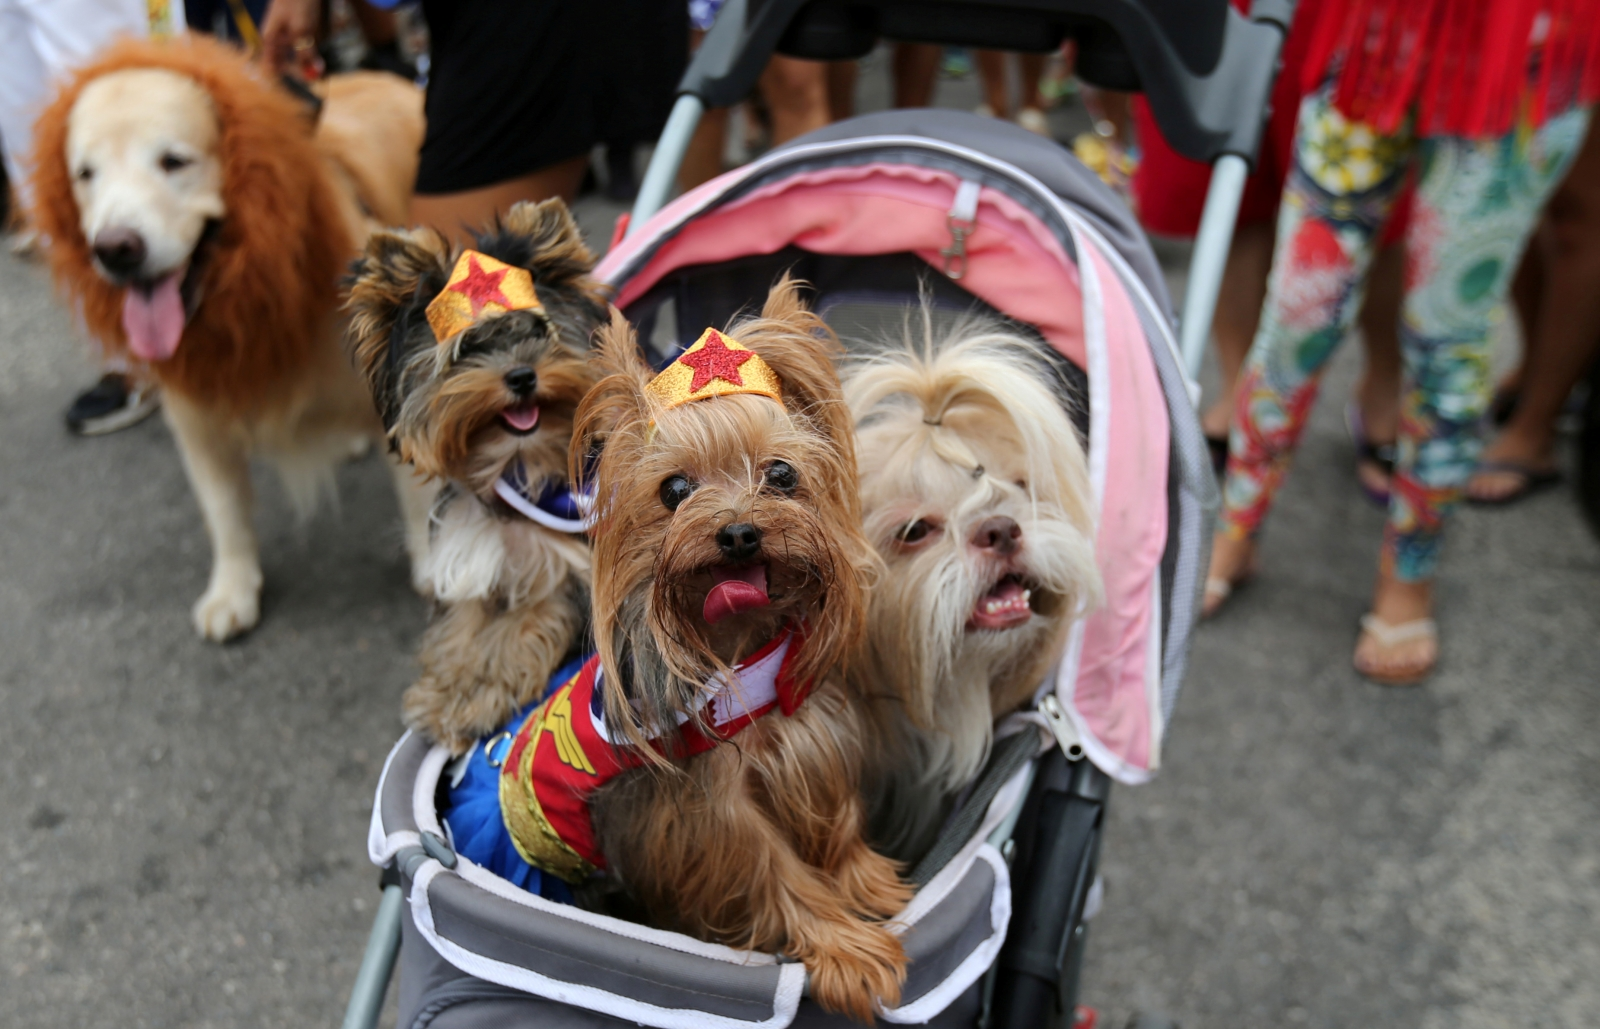 The Rio dog carnival, known as the Blocao – with 'bloco' meaning street party and 'cao' dog